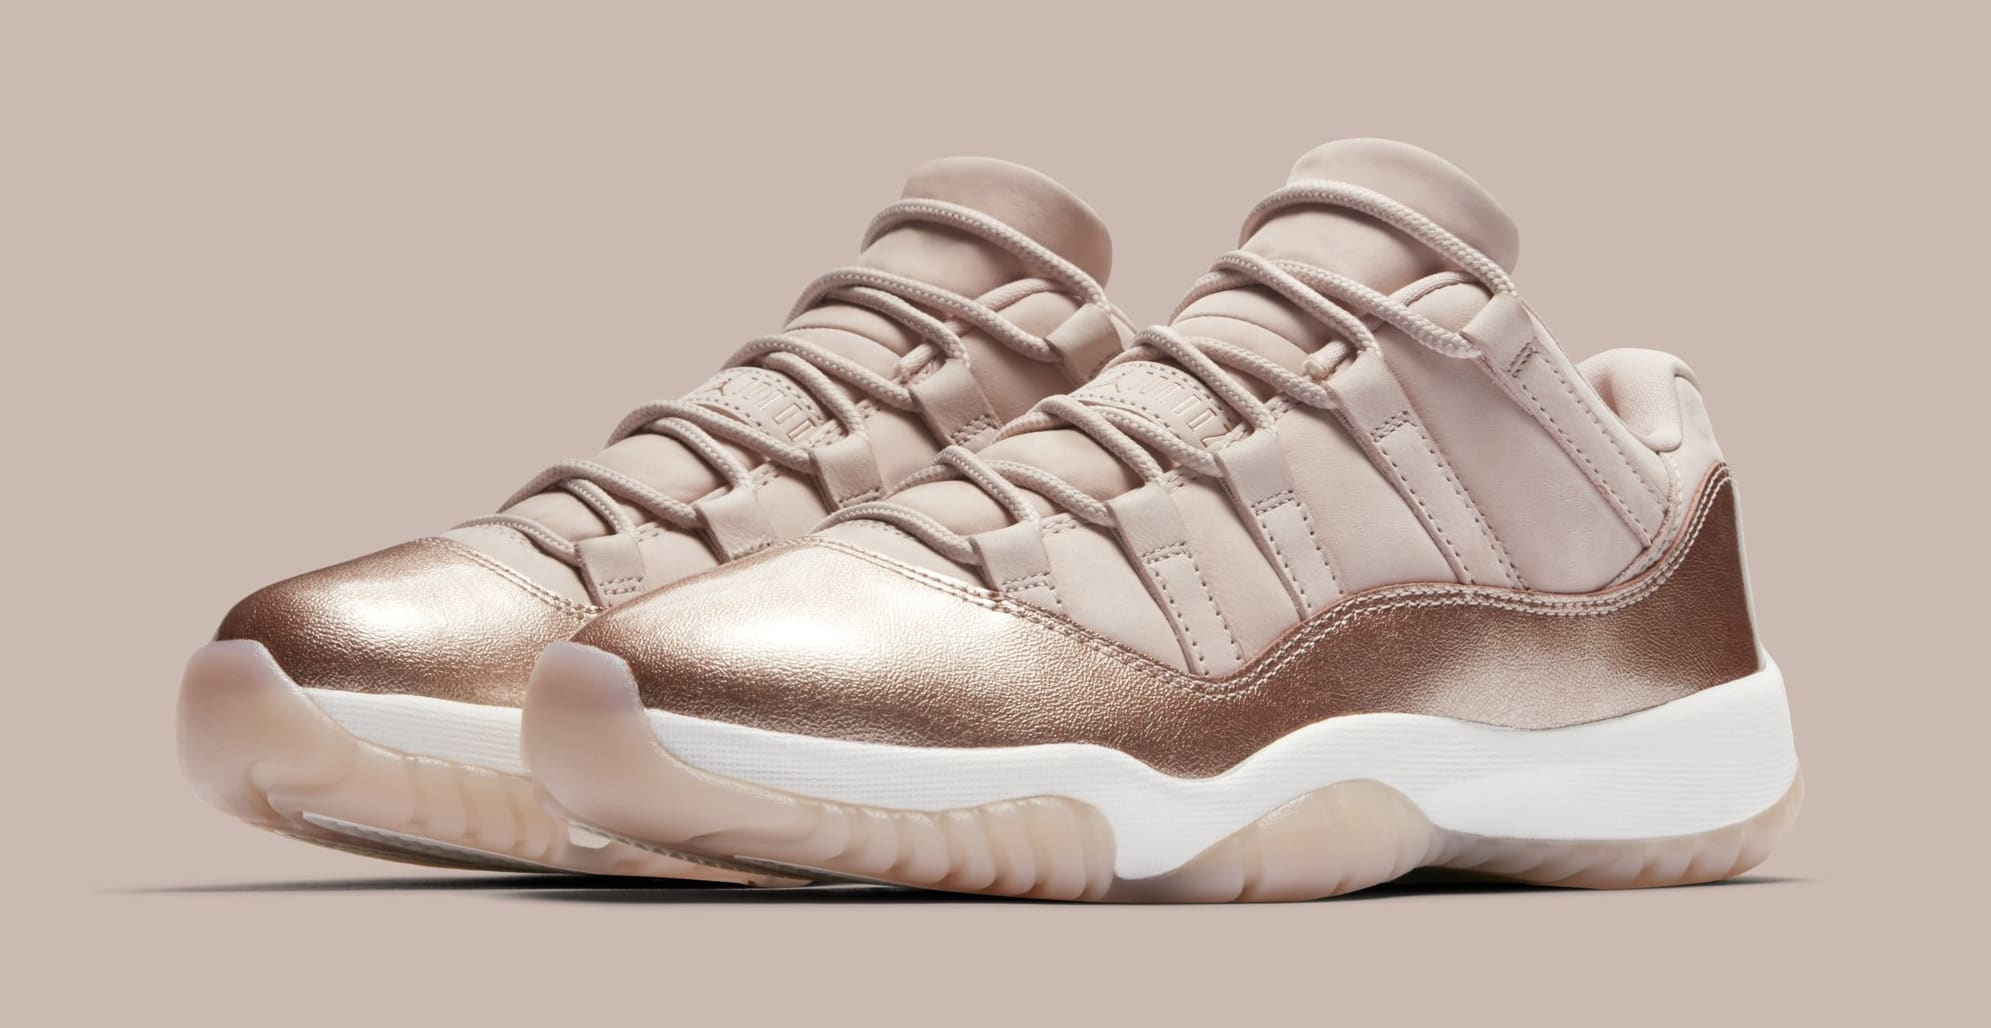 Air Jordan 11 Retro Low Rose Gold AH7860-105 2018 Womens Size 5.5 6.5